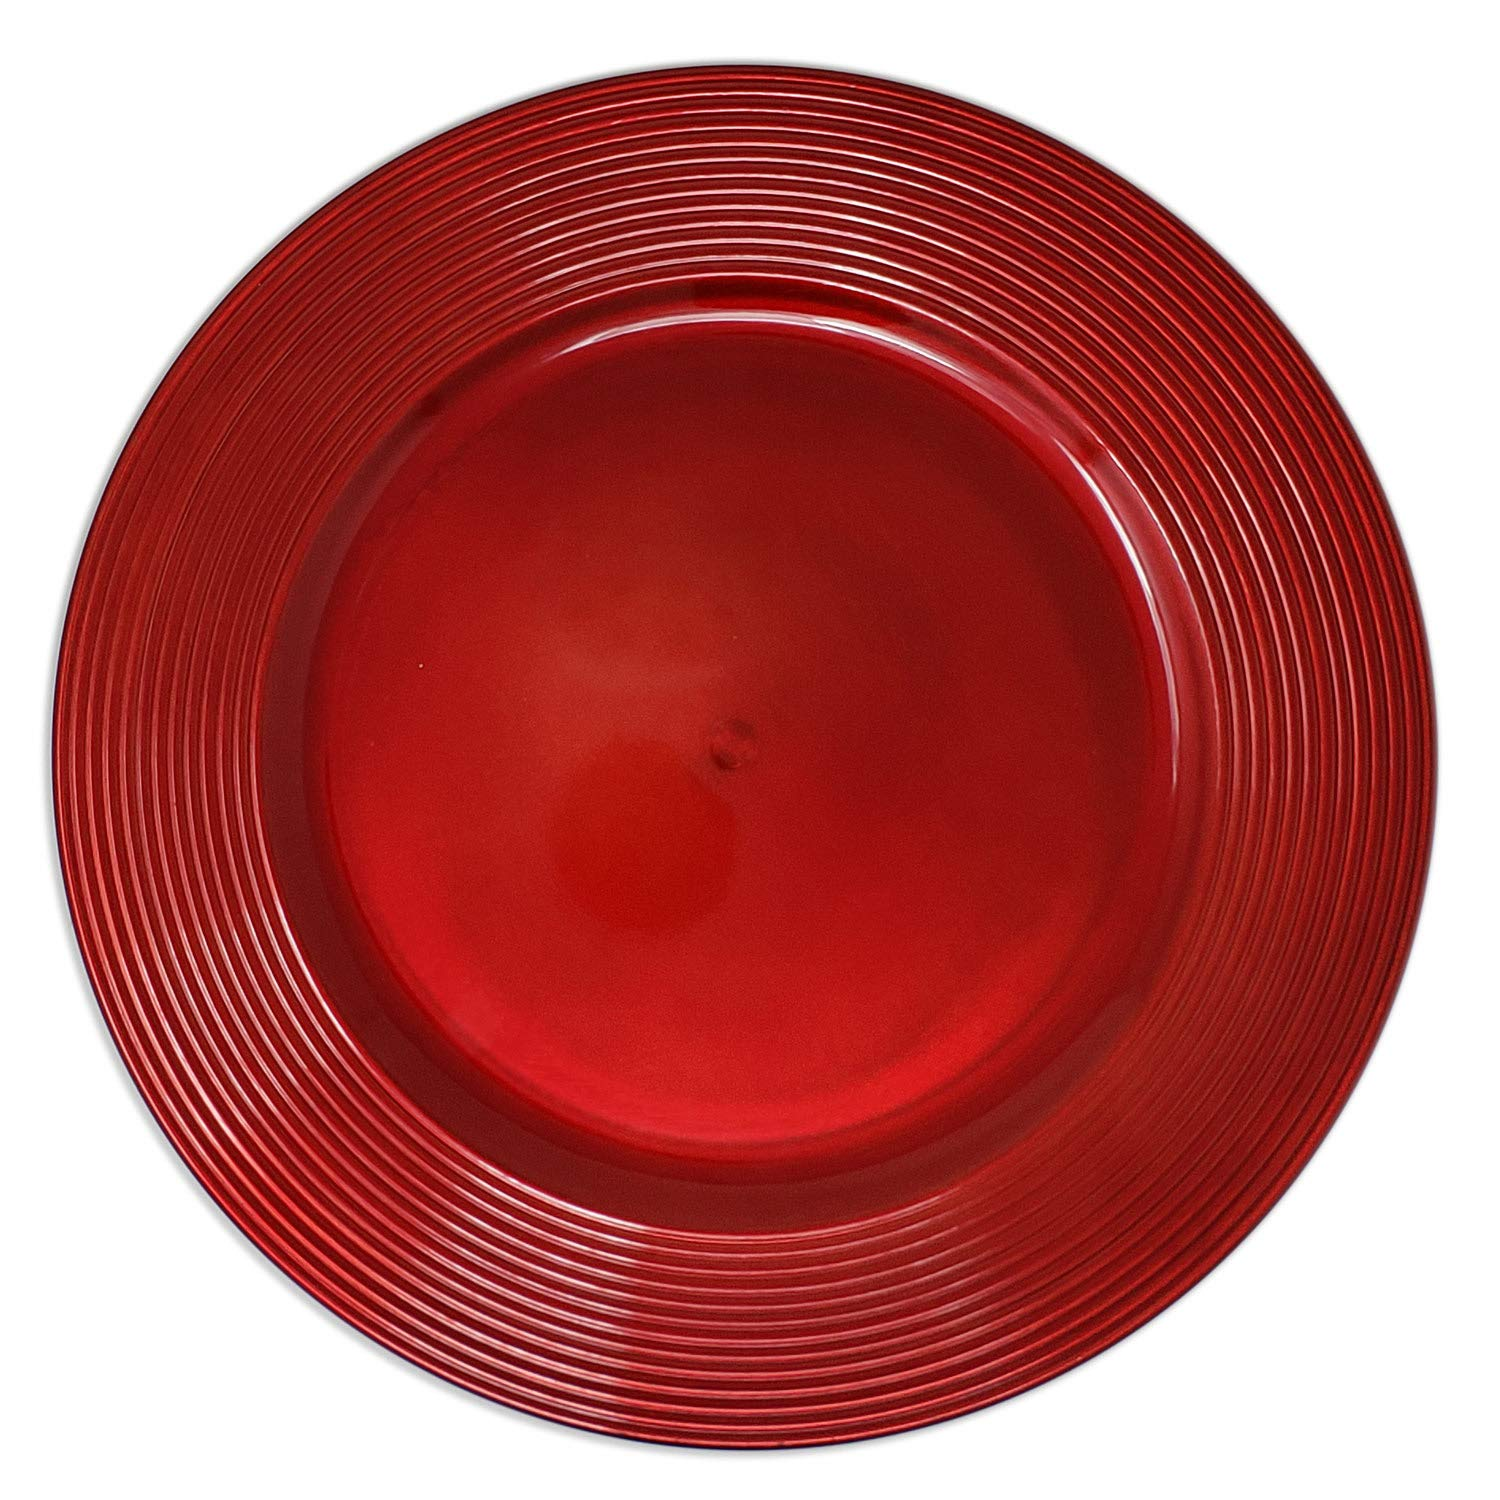 Dazzling Red Round Charger Dinner Plates 13 Inch, Set of 1,2,4,6, or 12 (12)